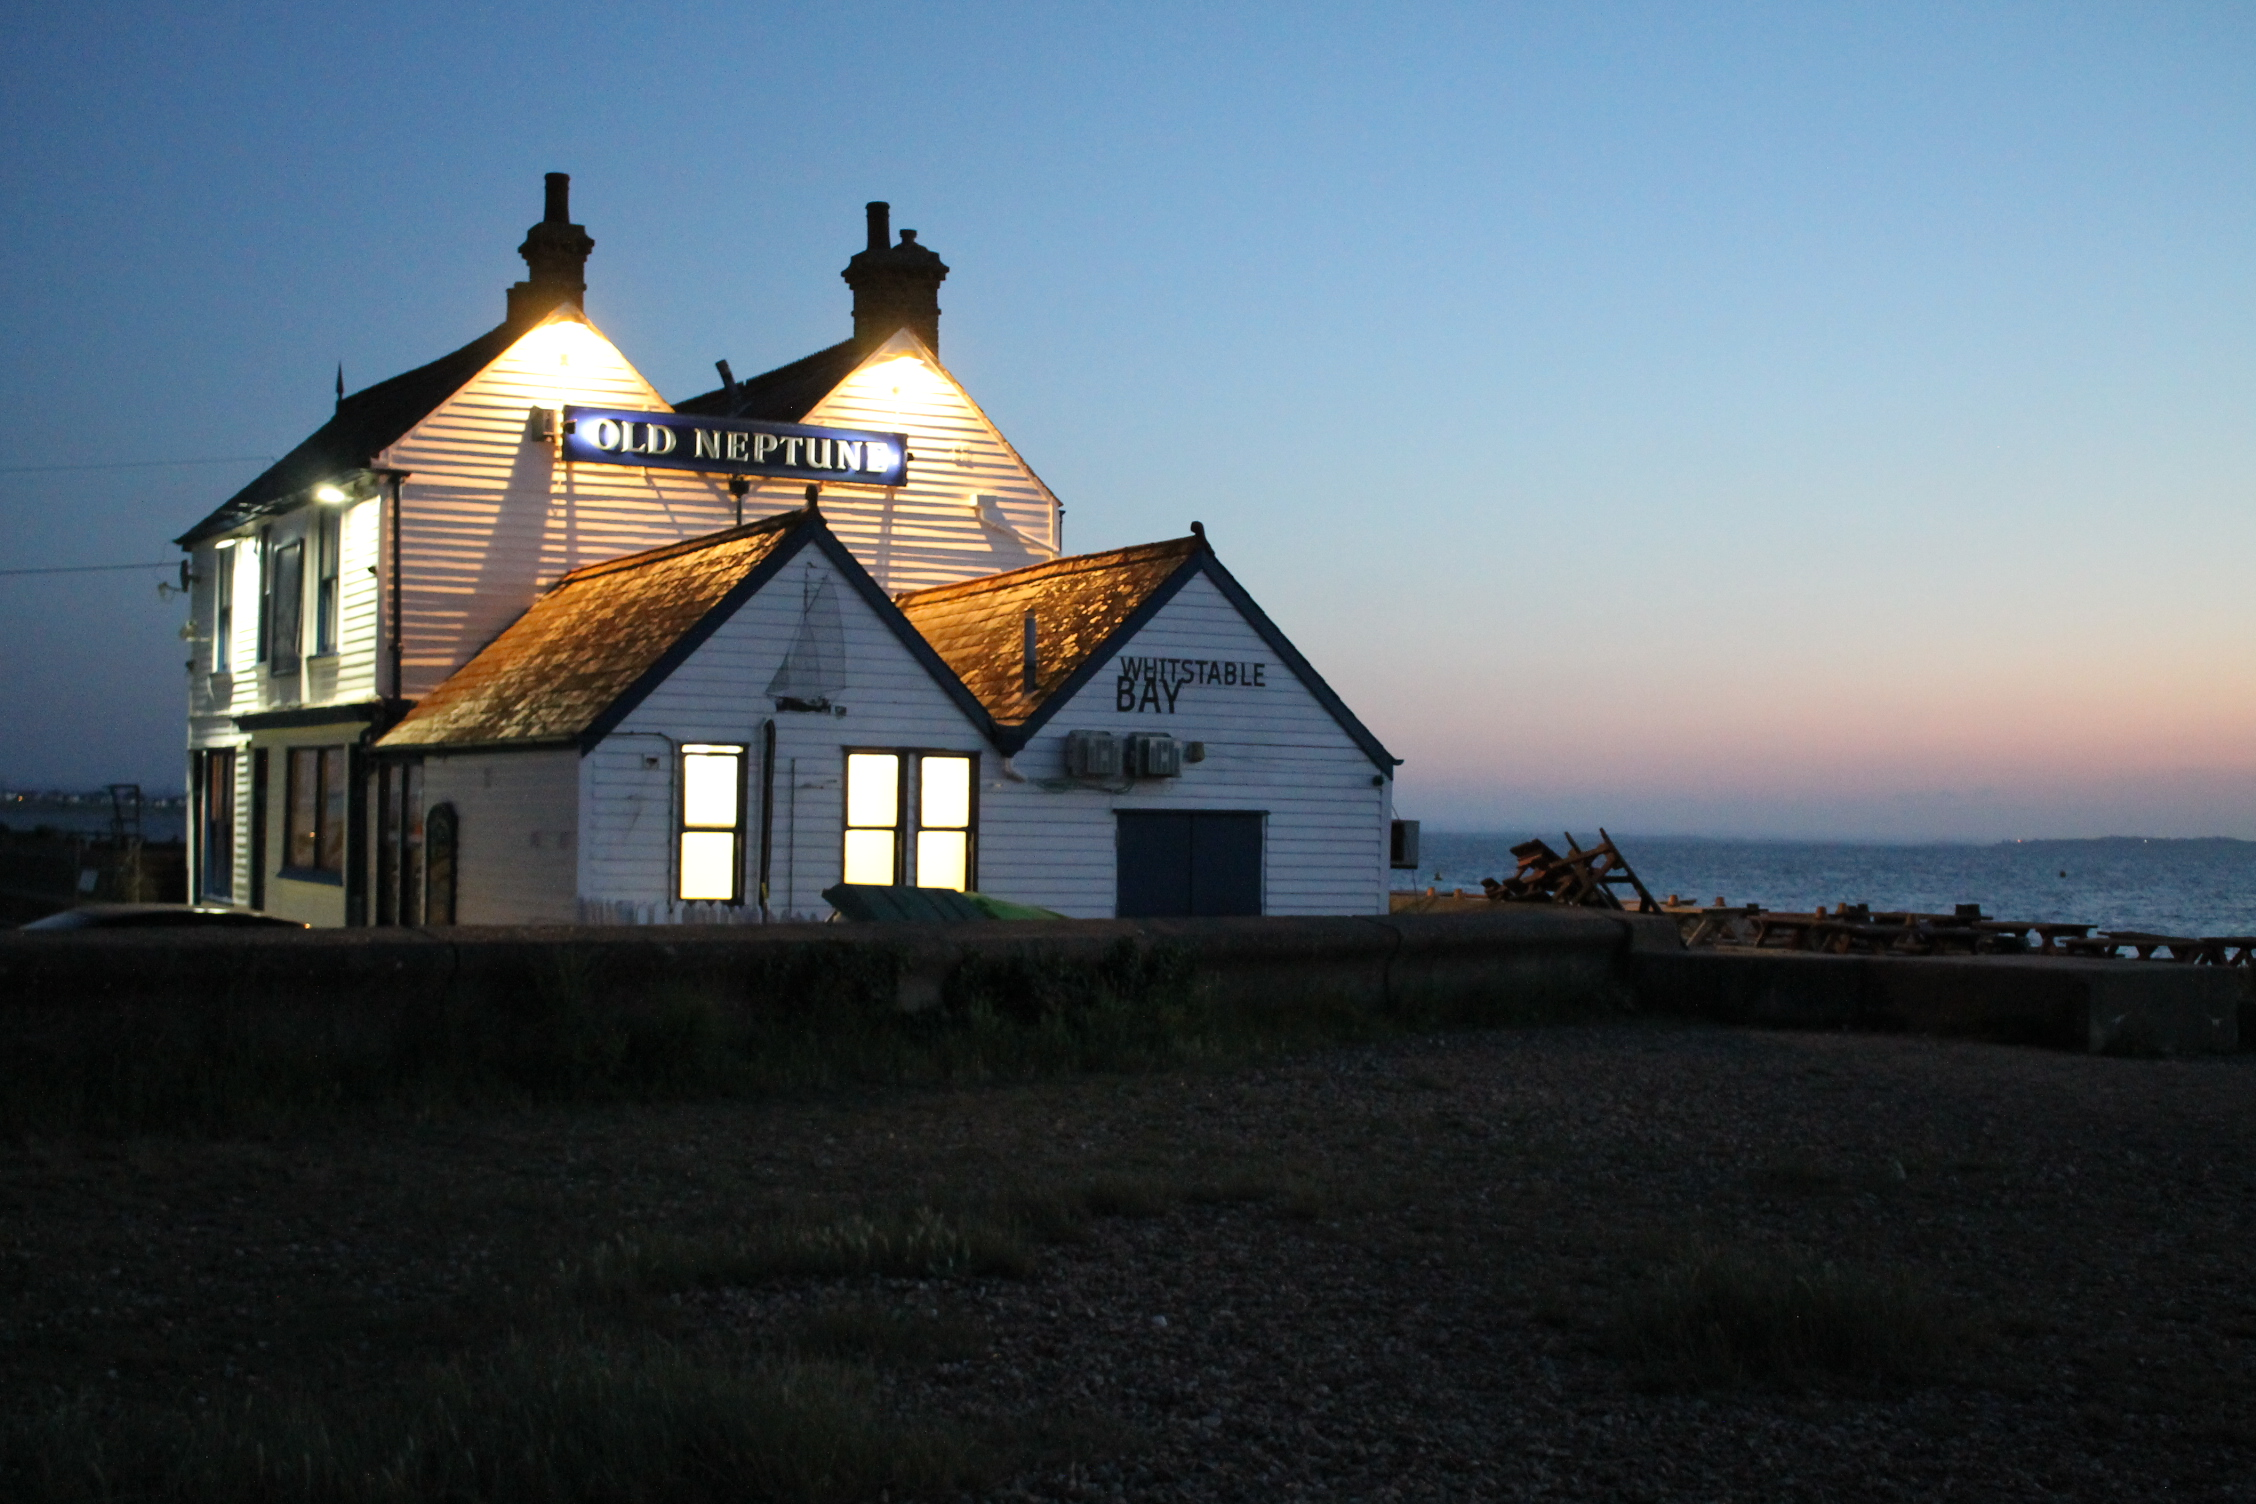 Photo of a building: Old Neptune at Whitstable Bay